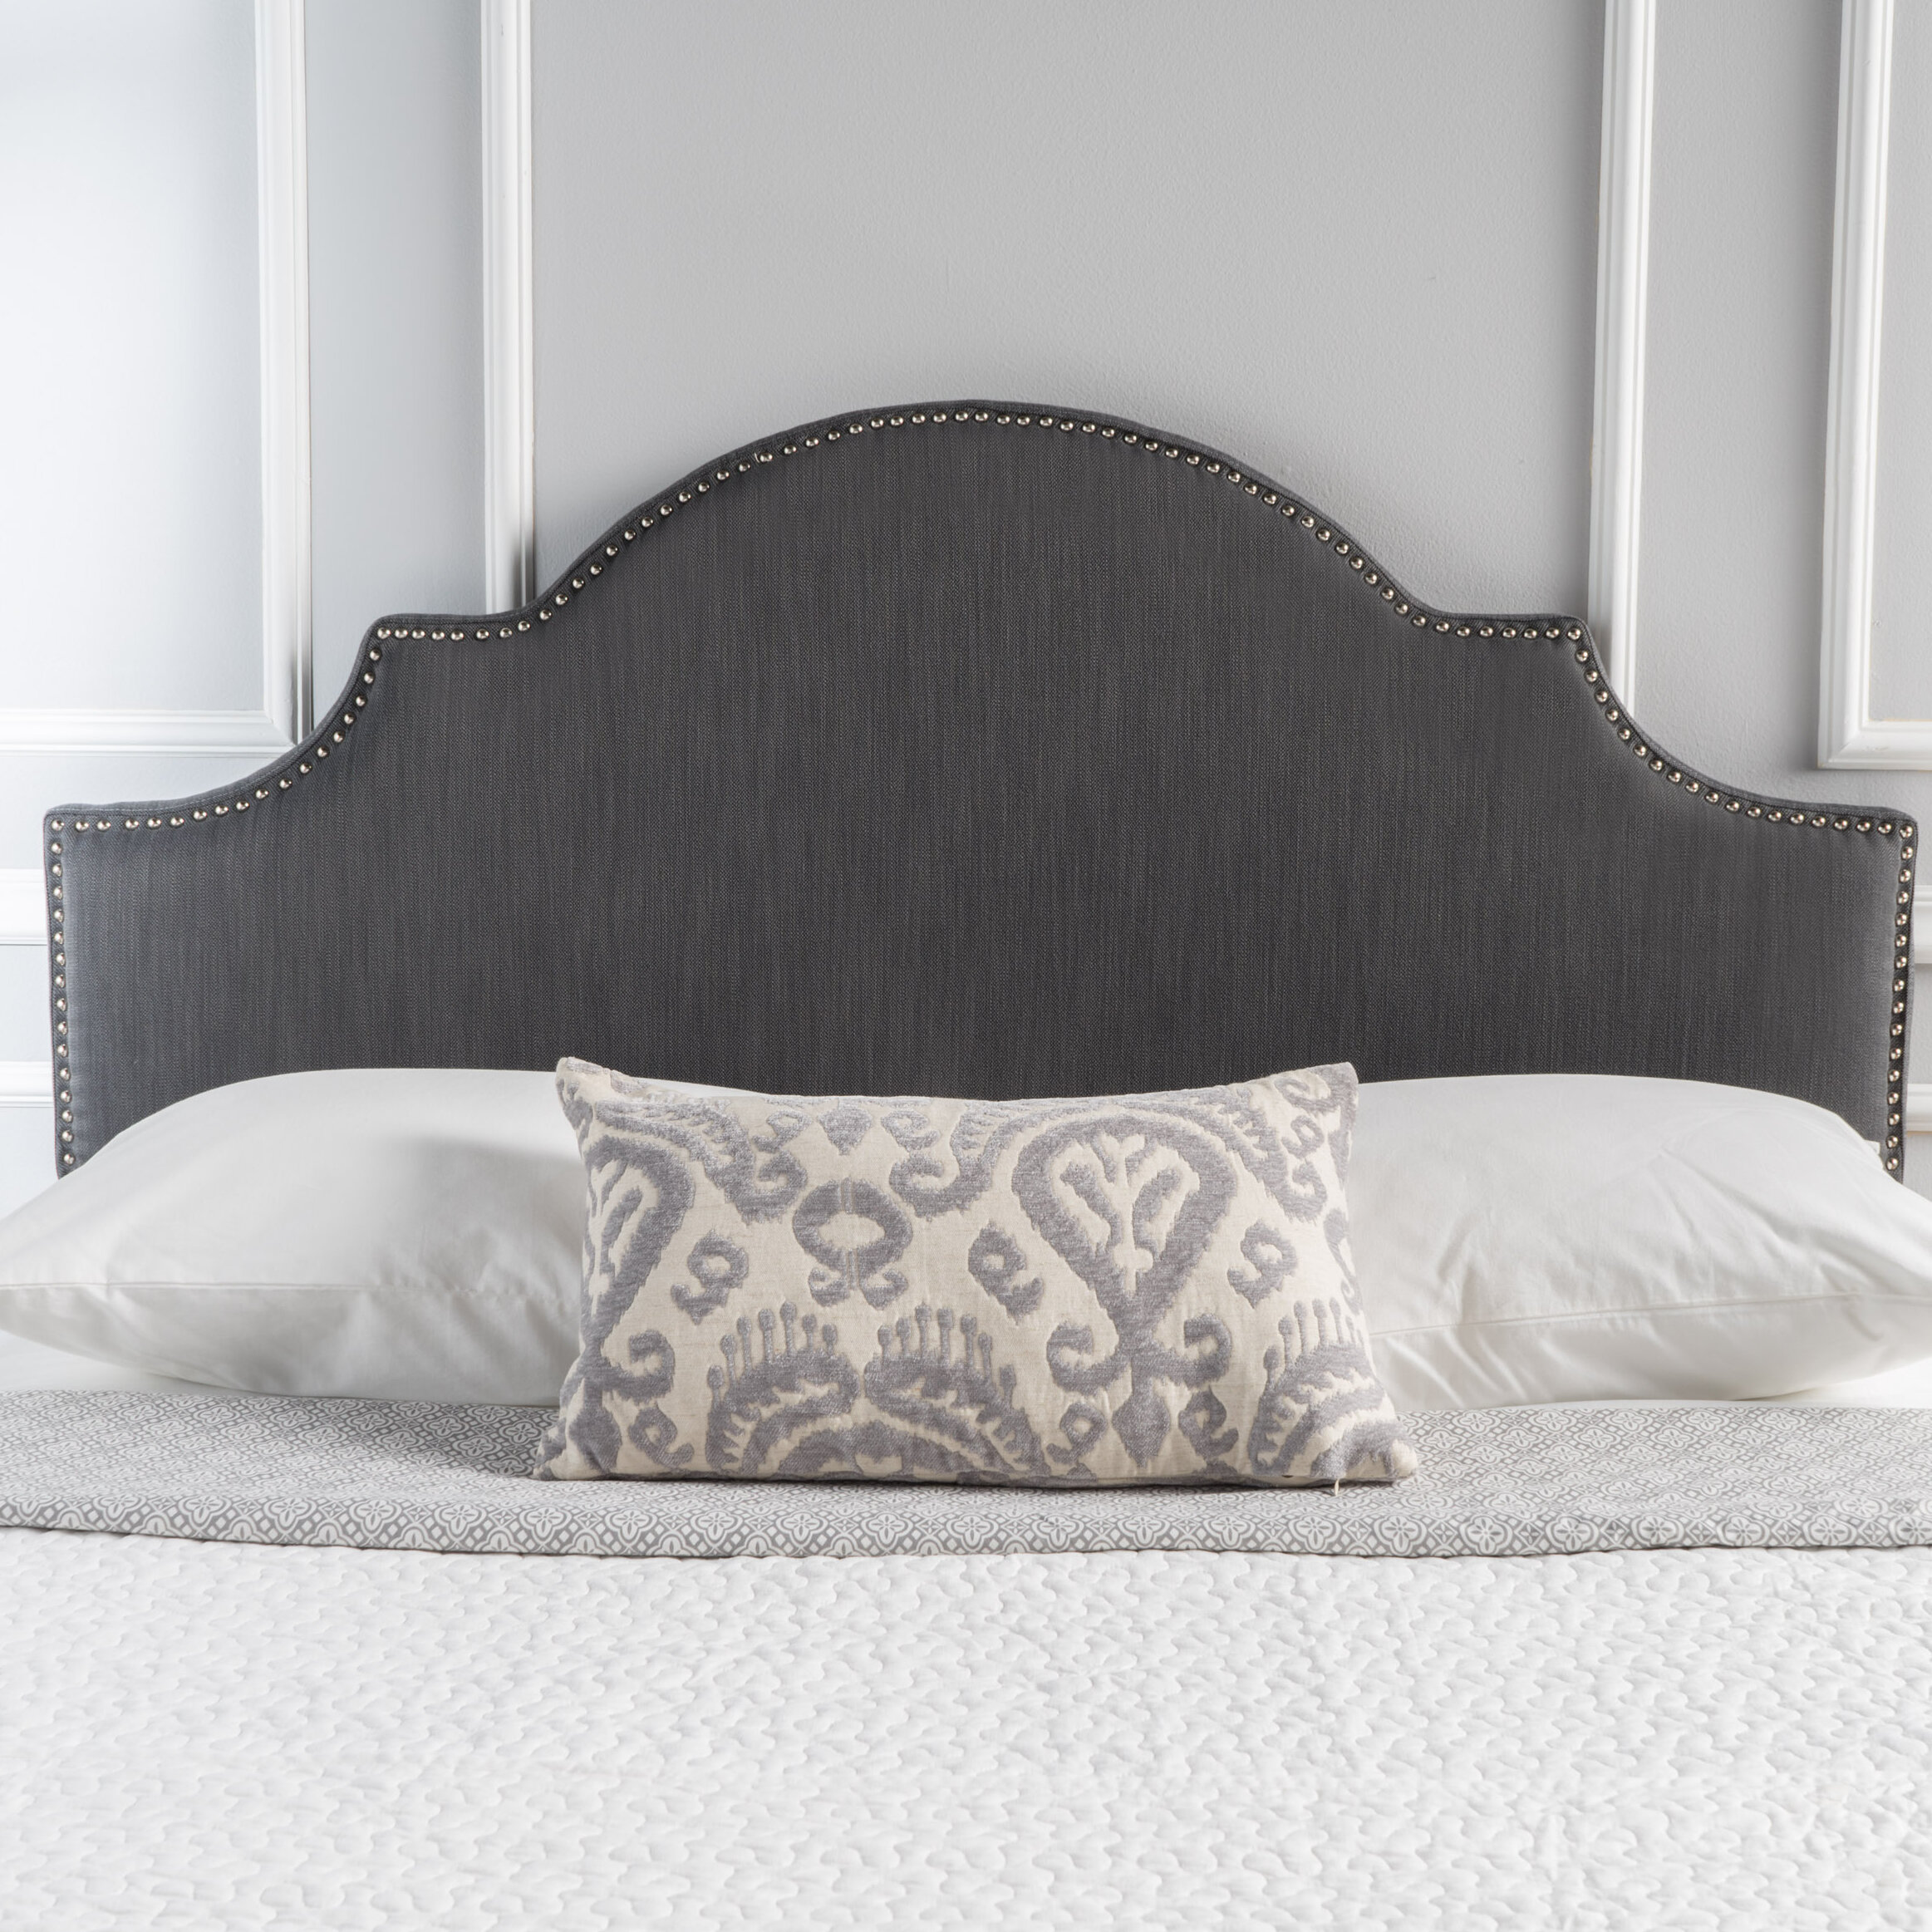 headboard tufted unique king of queen minimalist black bed white and upholstered tactical being fresh